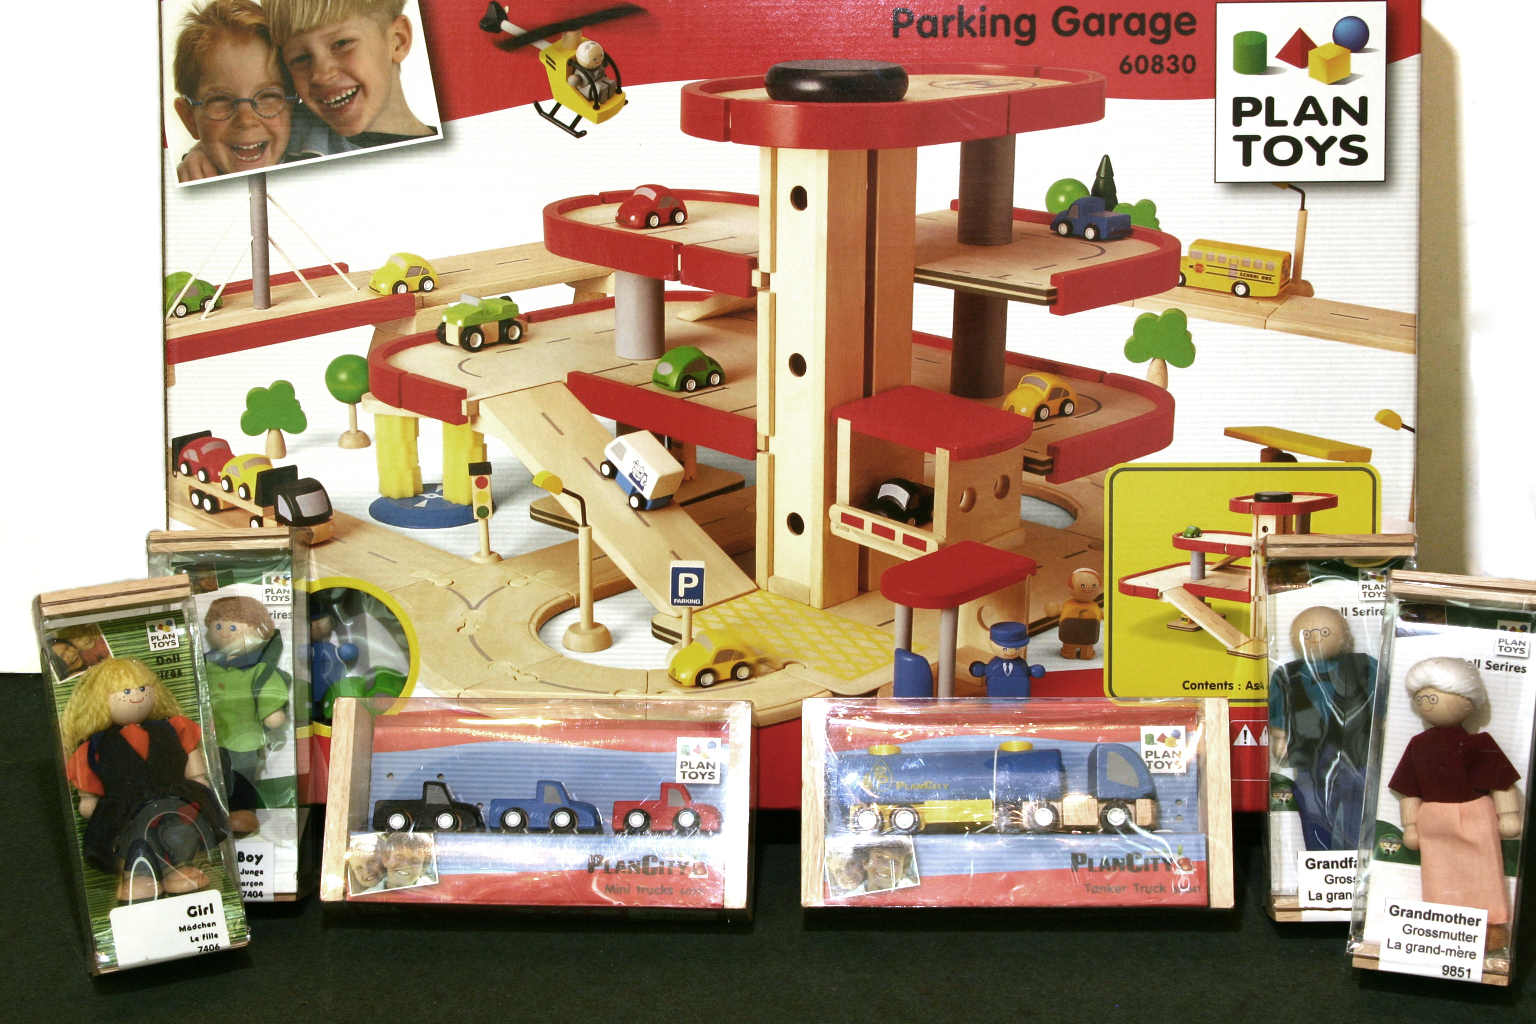 Plan Toys 6227 Wooden Parking Garage